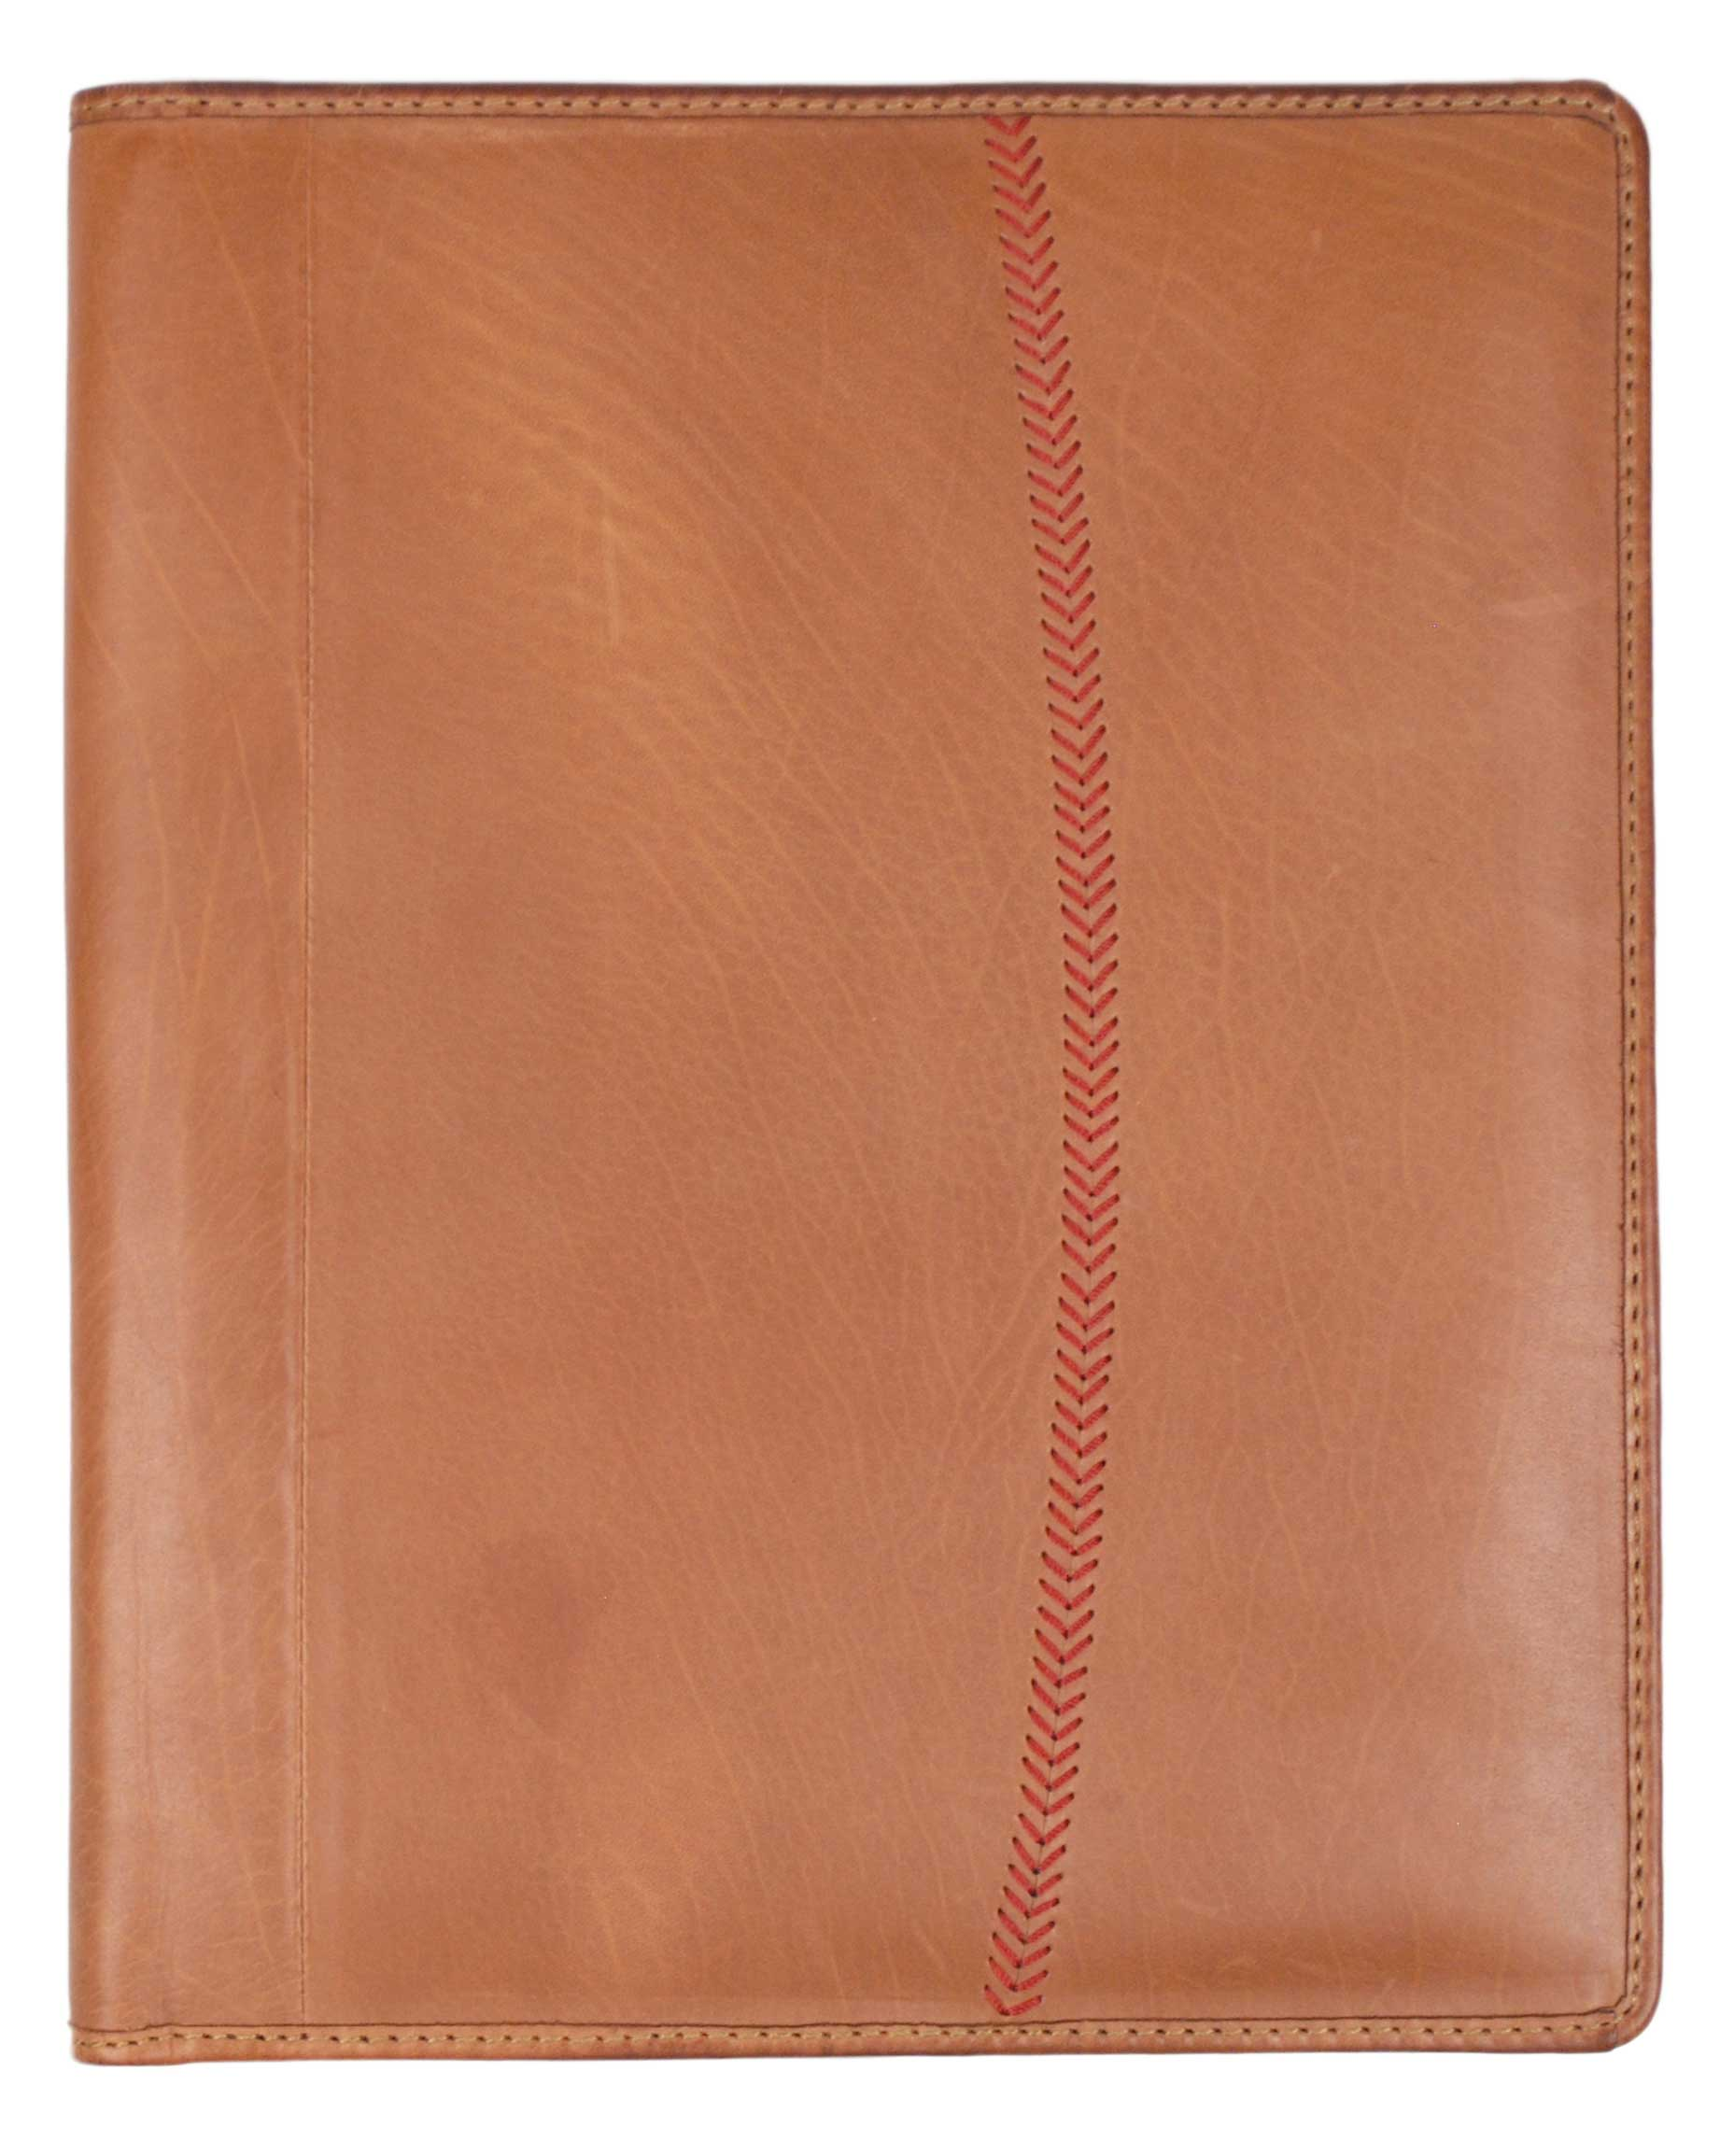 Rawlings Baseball Stitch Pad Folio/Tablet Case